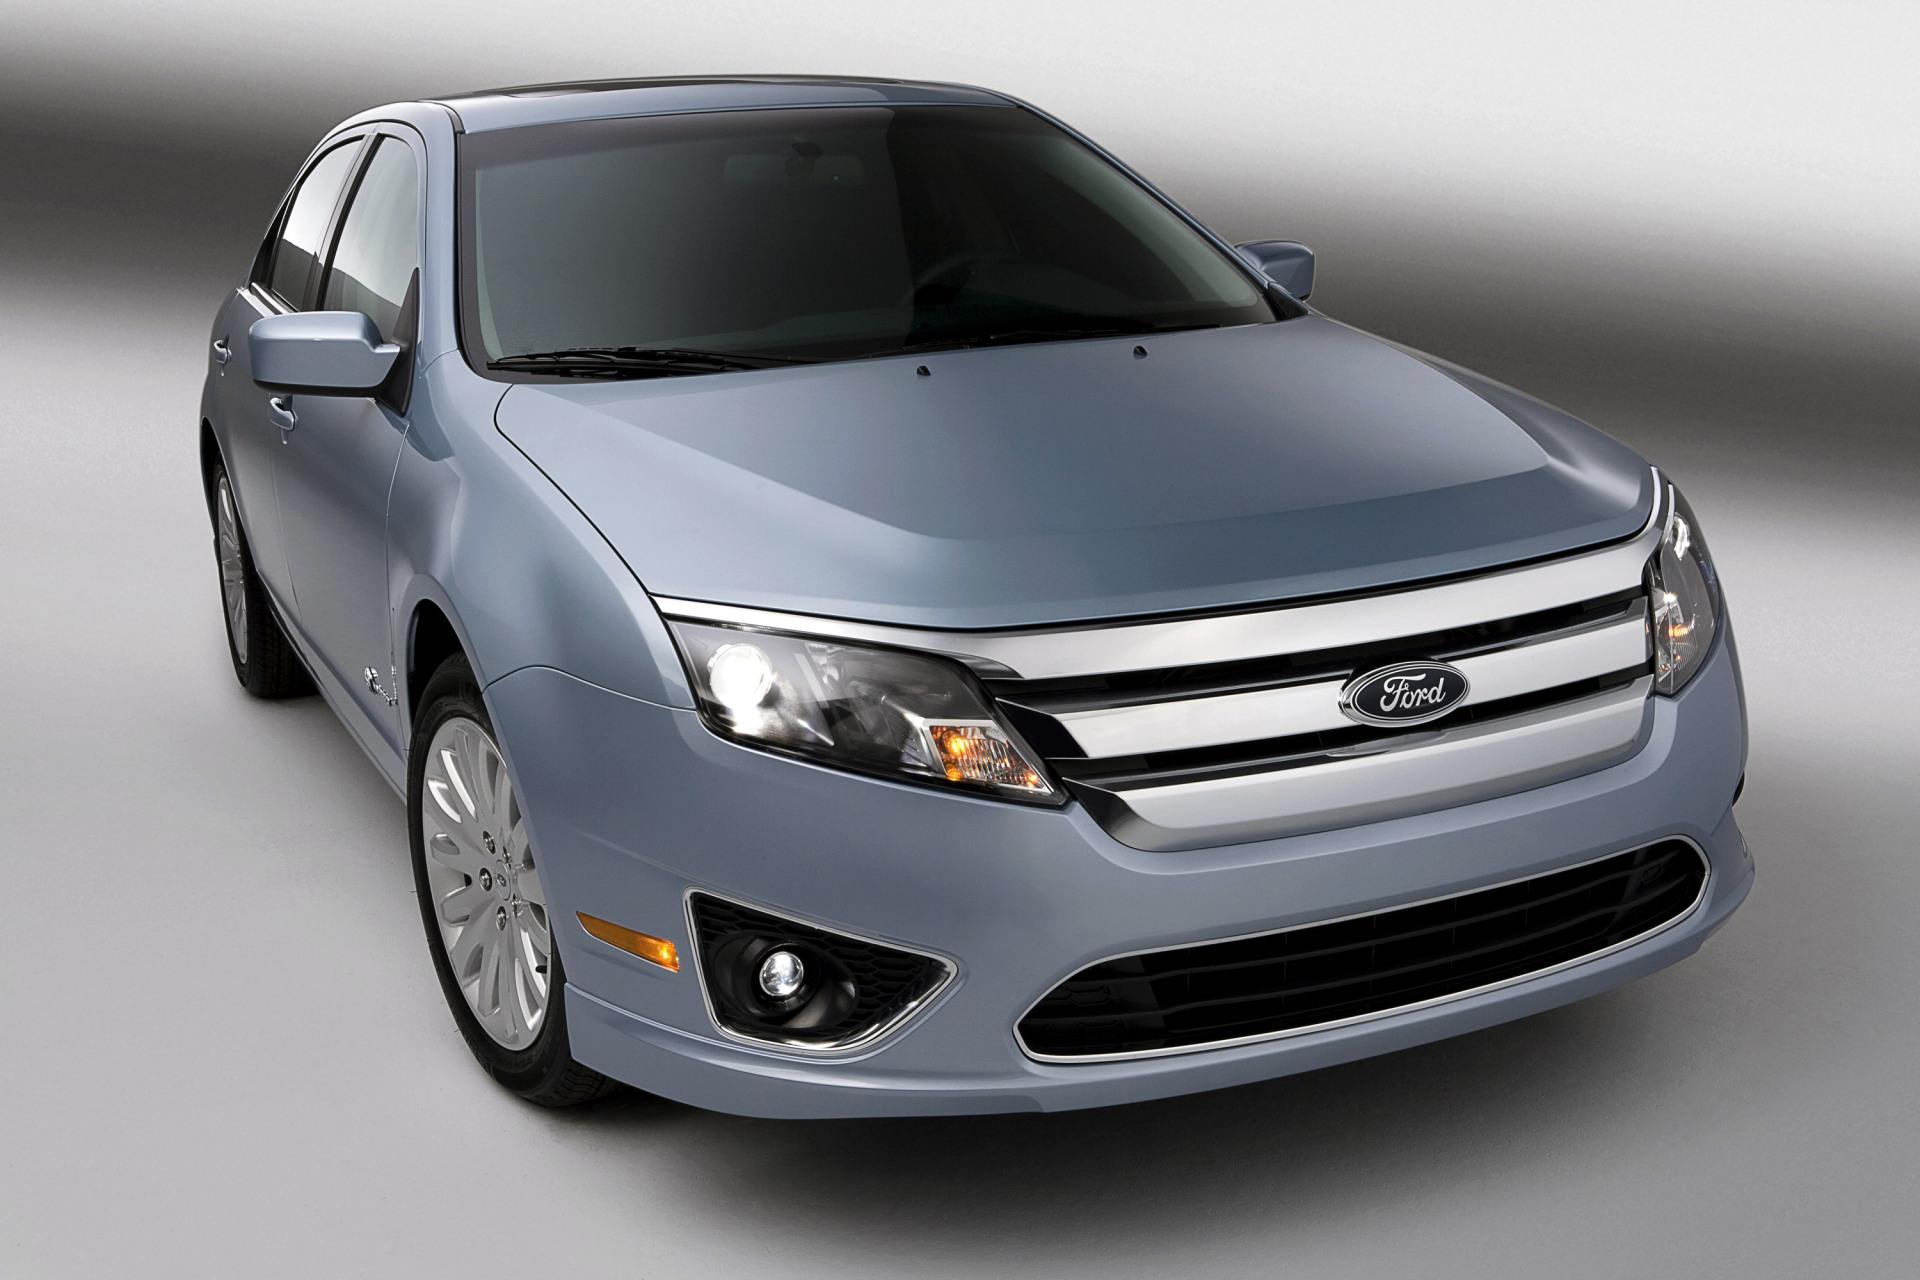 2010 ford fusion hybrid technical specifications and data engine dimensions and mechanical. Black Bedroom Furniture Sets. Home Design Ideas